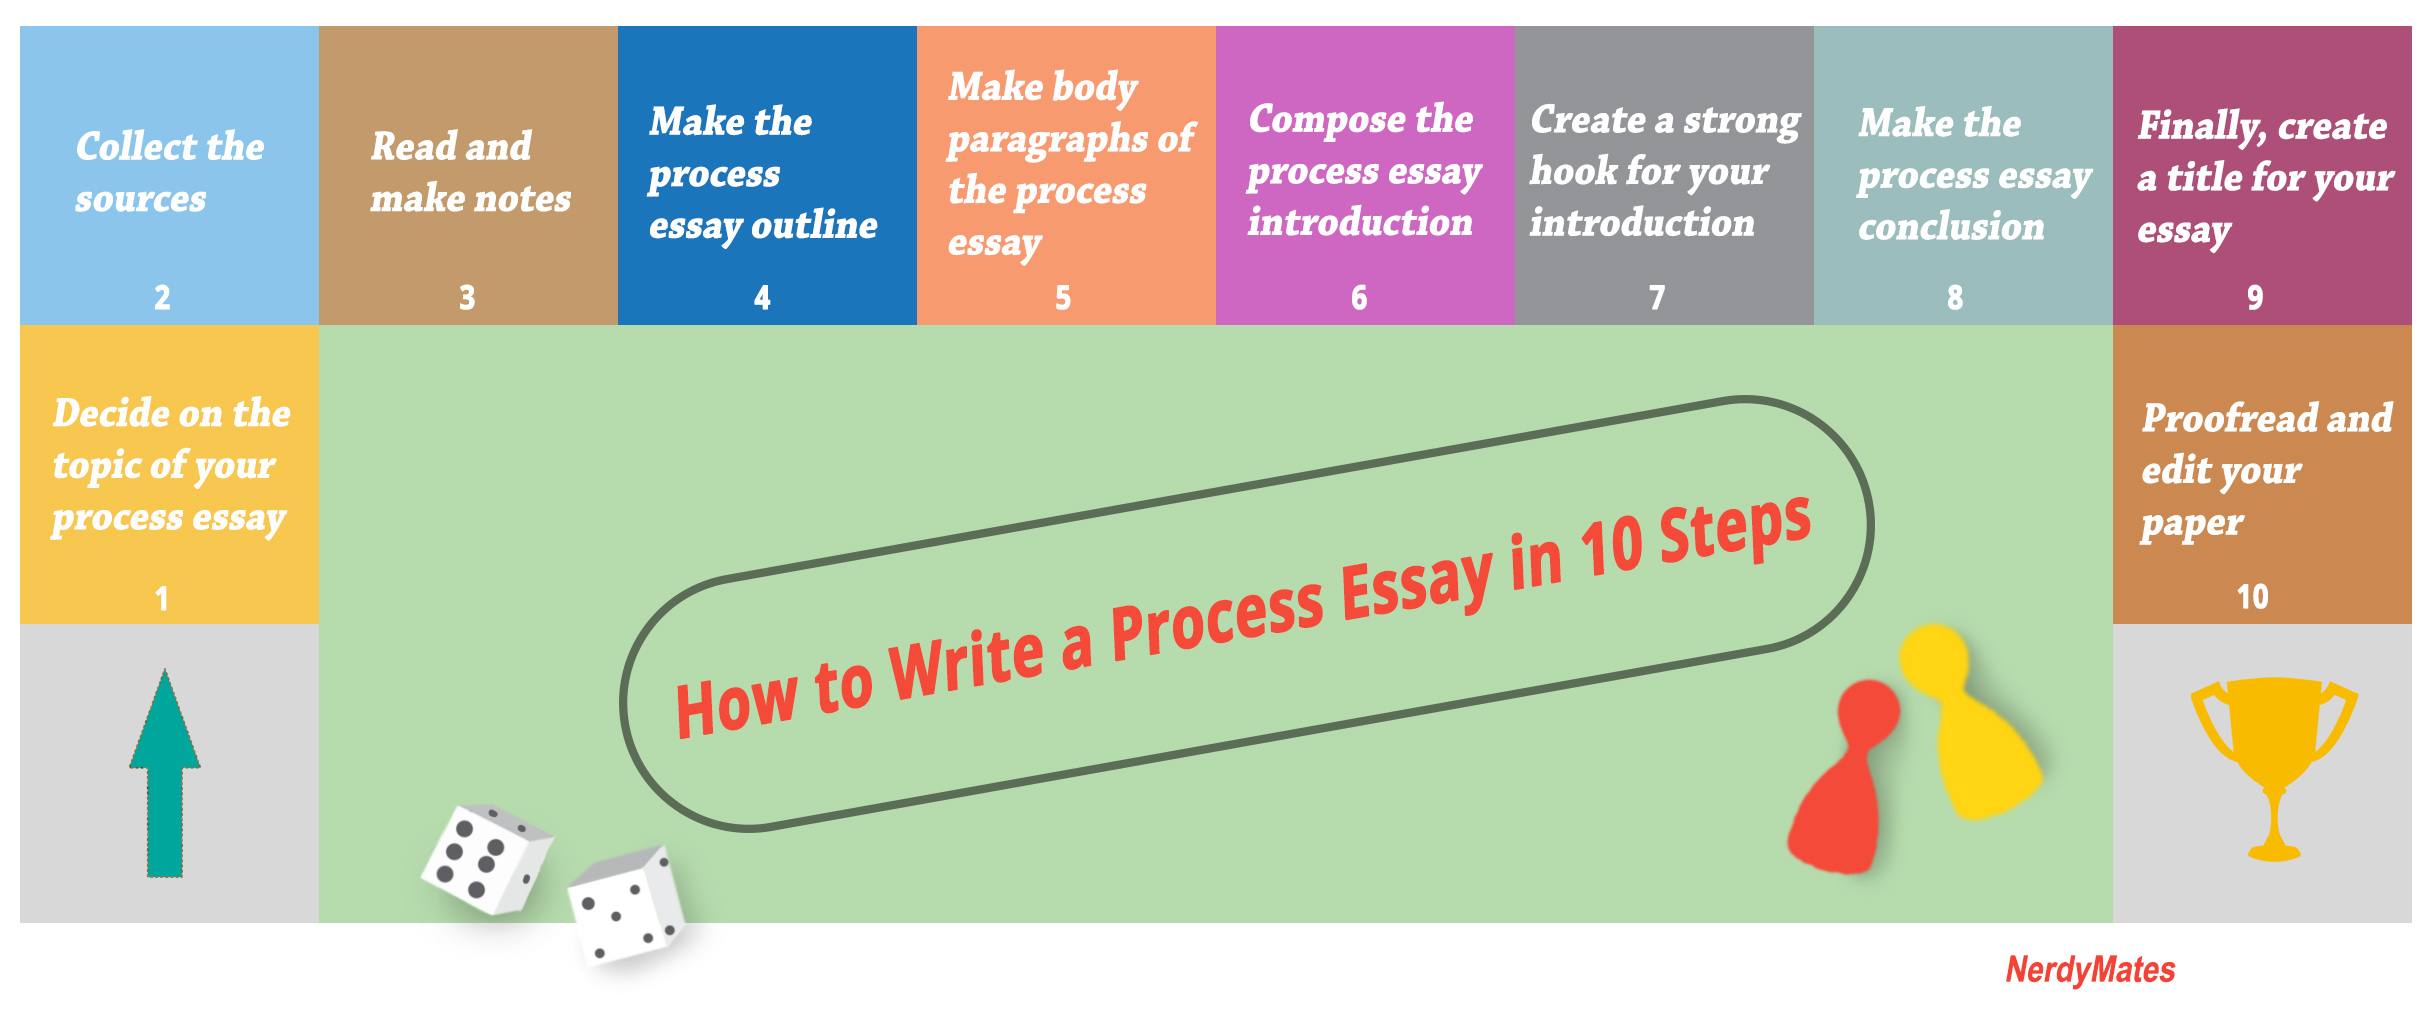 process essay how to make